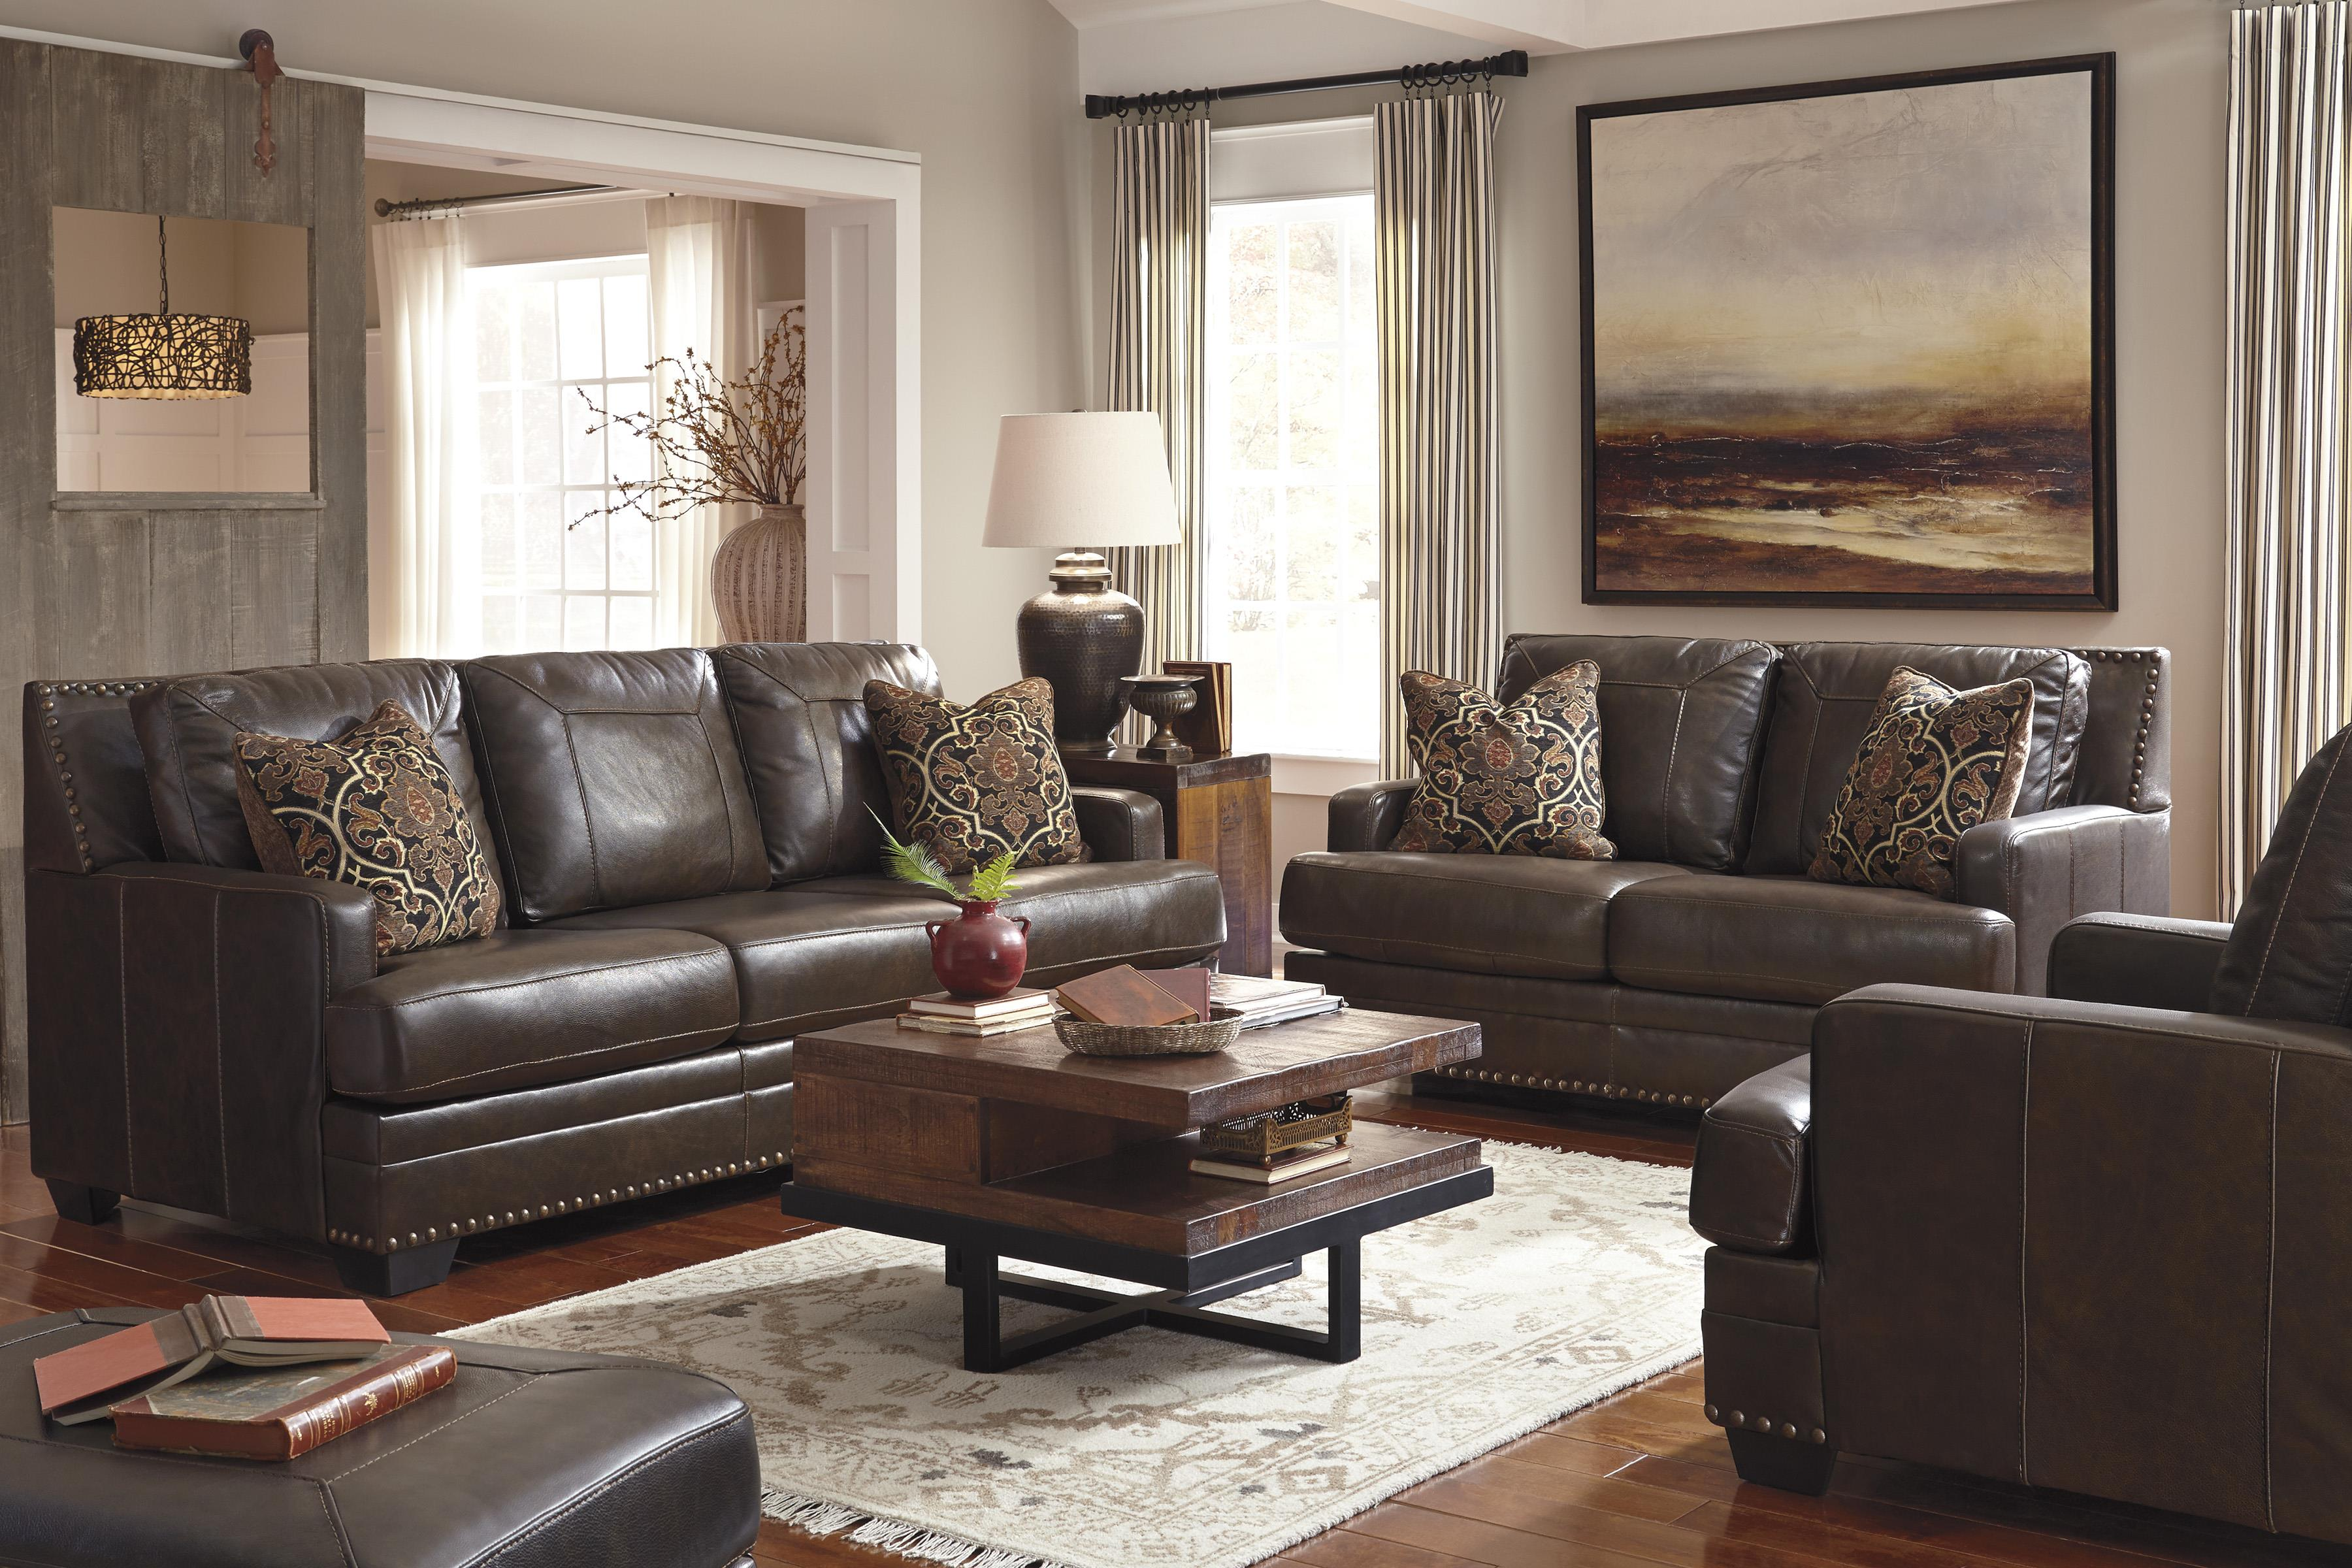 living room designs with brown sofas decorating ideas for small rooms on a budget signature design by ashley corvan stationary group item number 69103